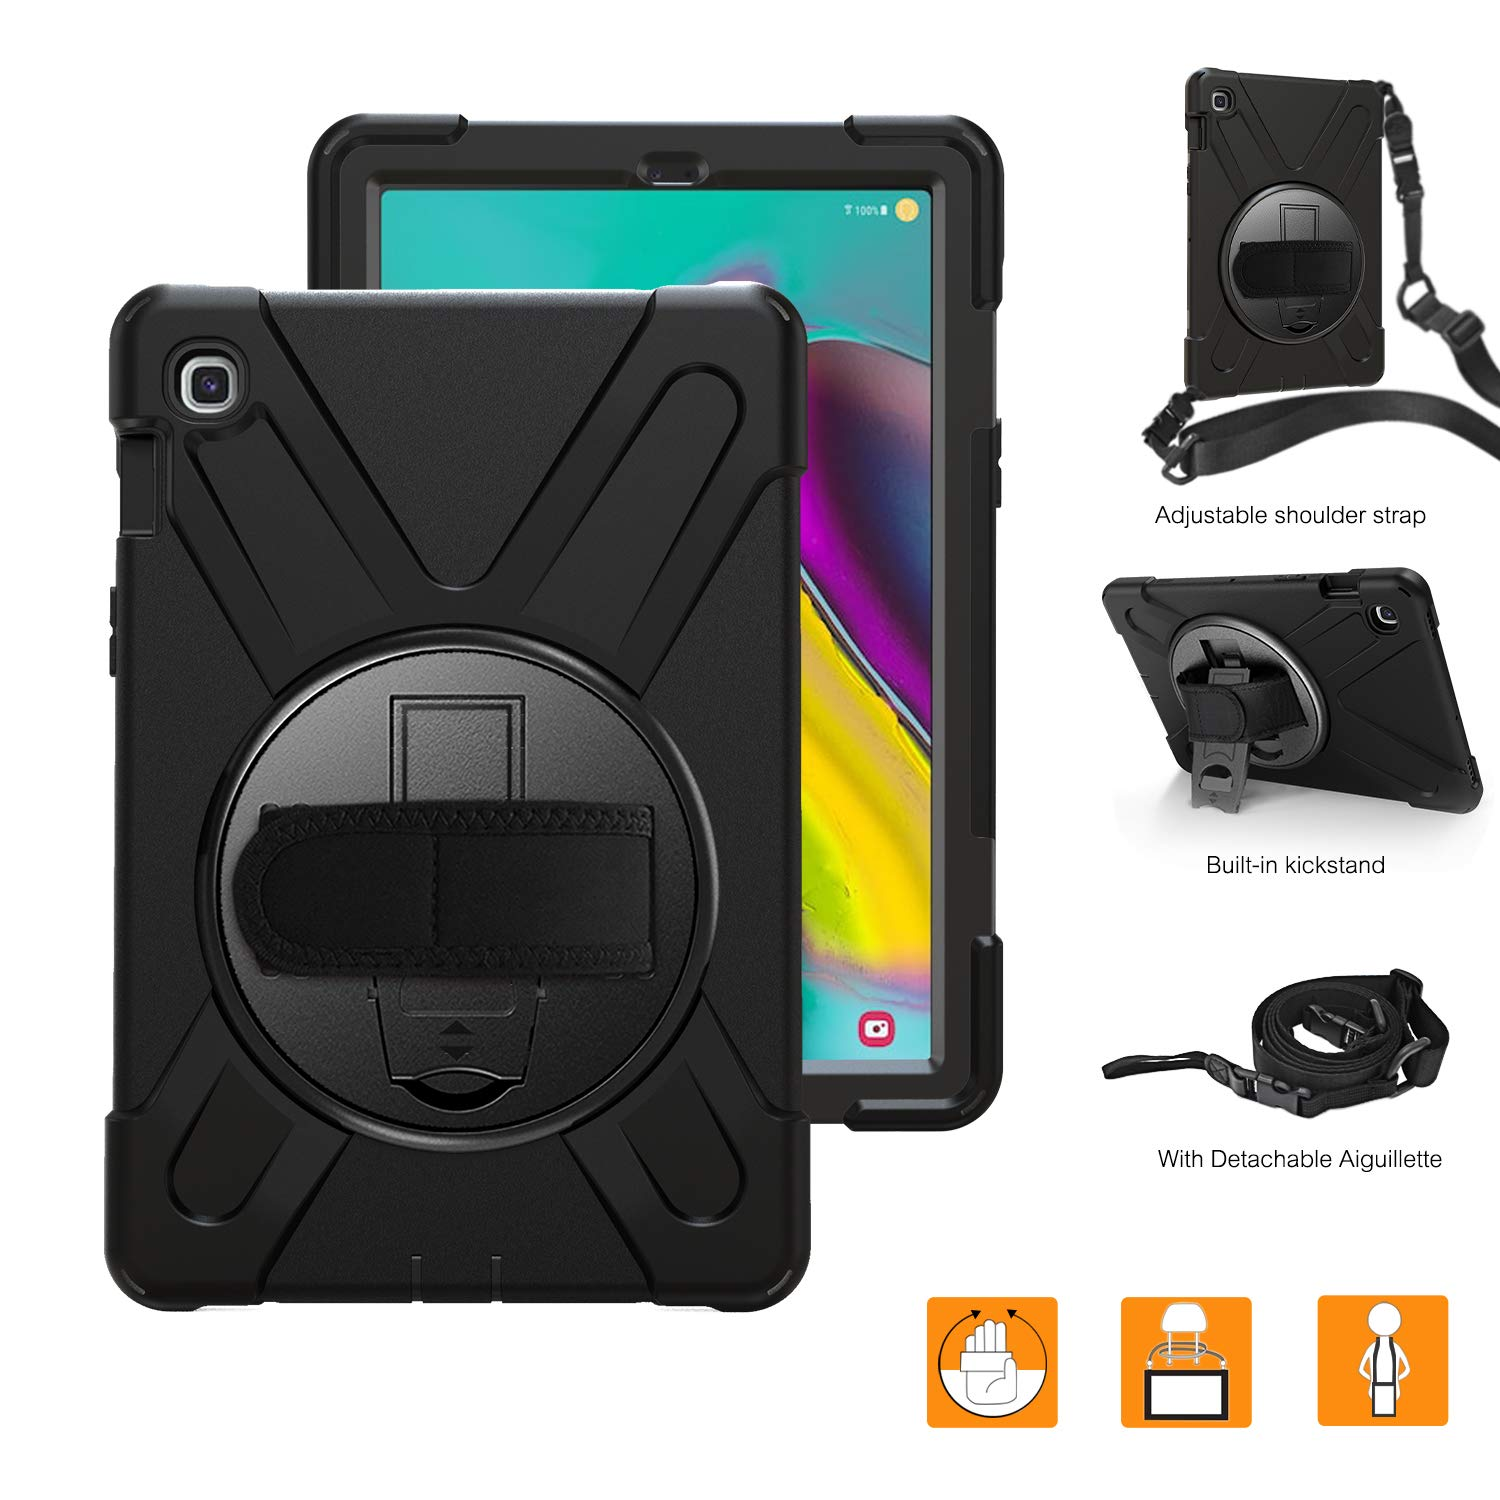 """BRAECNstock Galaxy Tab S5e 10.5 Inch 2019 T720 T725 Case, Heavy Duty Shockproof Cases with 360 Degree Rotating Hand Strap/Kickstand/Shoulder Strap for 10.5"""" Galaxy Tab S5e Tablet SM-T720/T725 (Black)"""